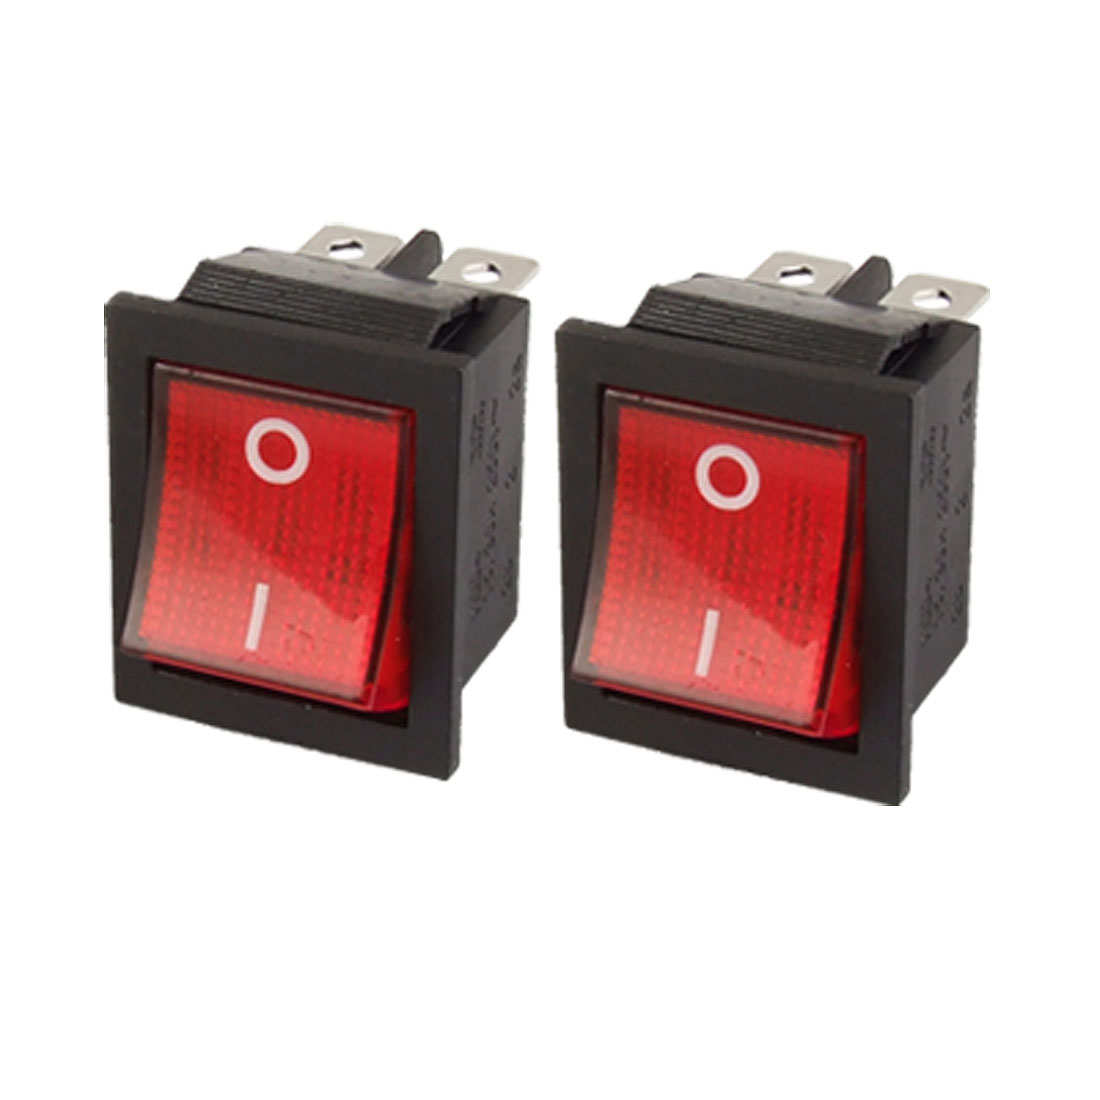 AC 250V 16A 125V 20A Red Light 6 Pin DPDT On/On 2 Position Snap in Boat Rocker Switch 2 Pcs